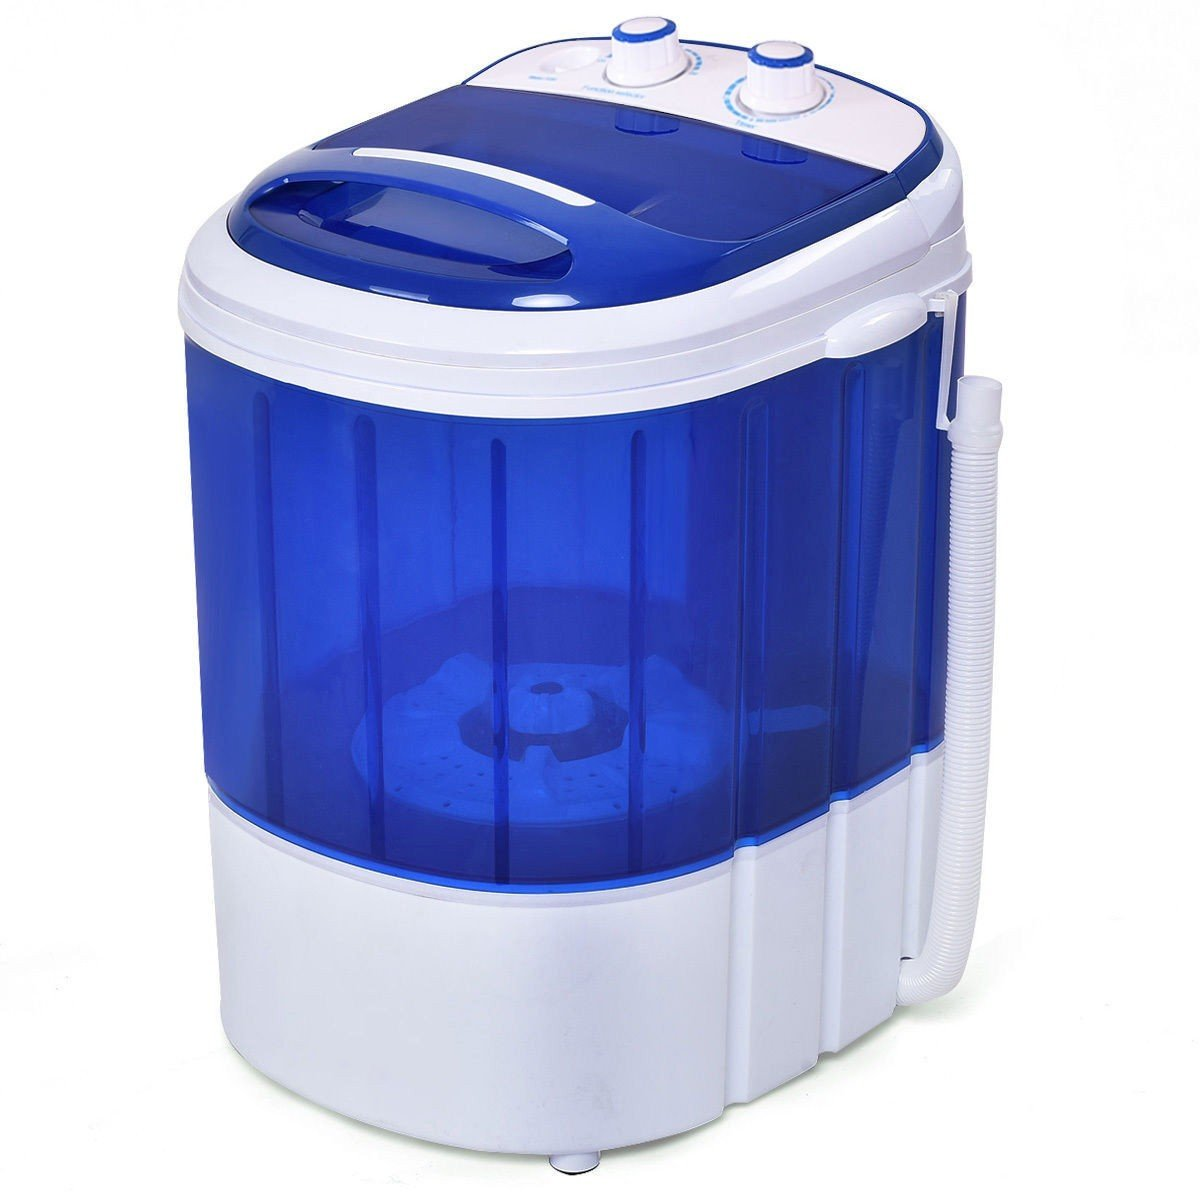 Kanizz Portable Washing Machine Compact Single Tub 7lbs. Mini Laundry Spinner Top Load Wash Semi-Automatic, Durable Dorm Room Compact Household MonoTub Washing Machine Gravity Drain Easy Use by Kanizz